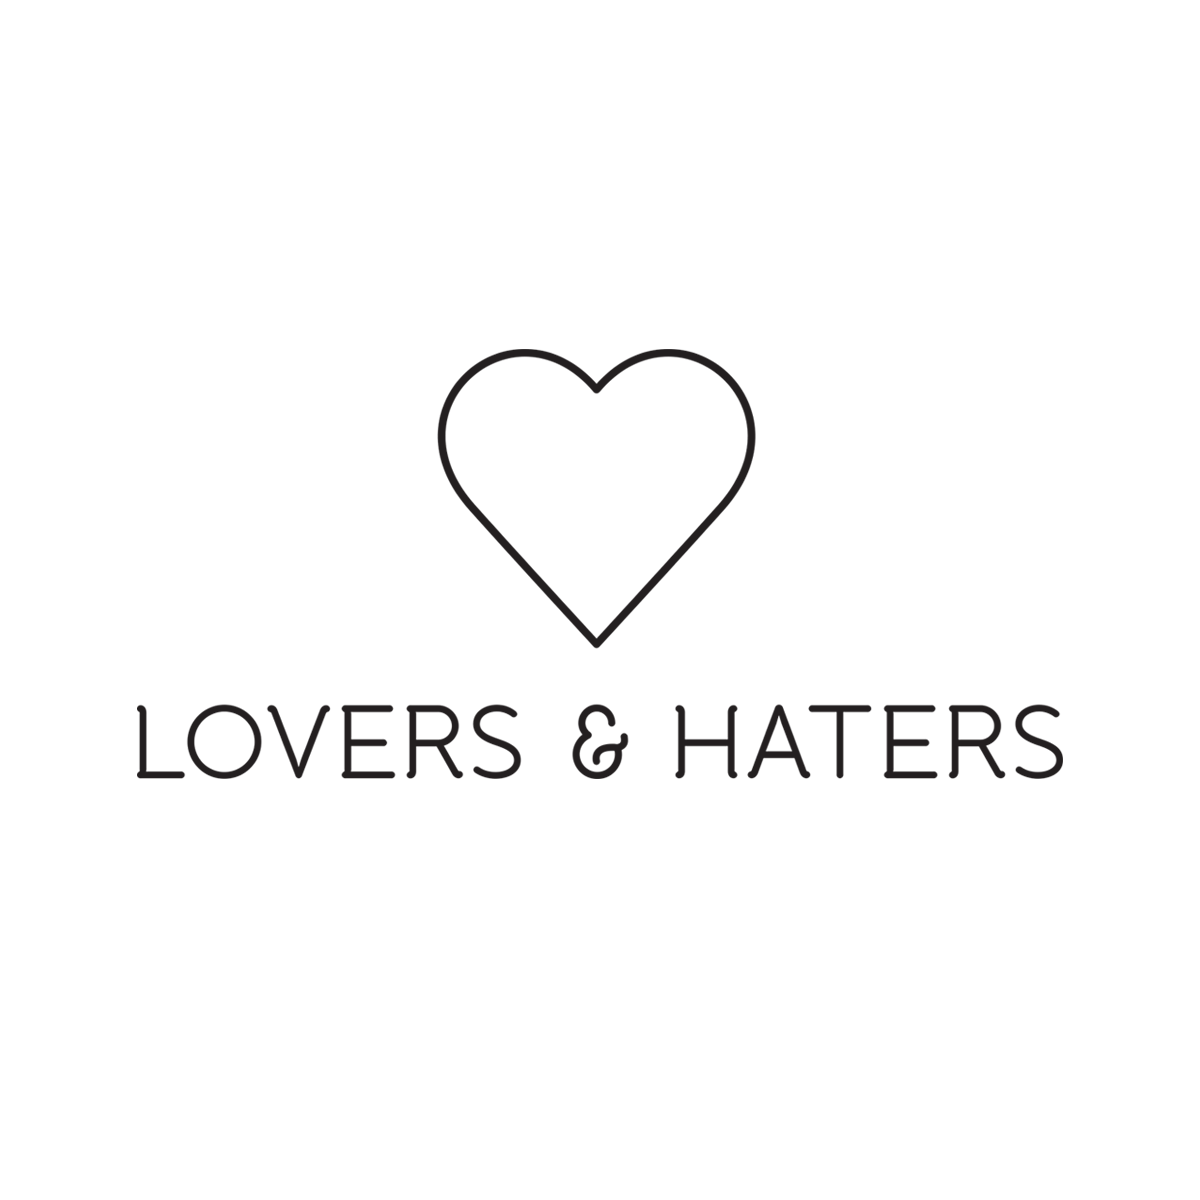 Lovers and Haters logo